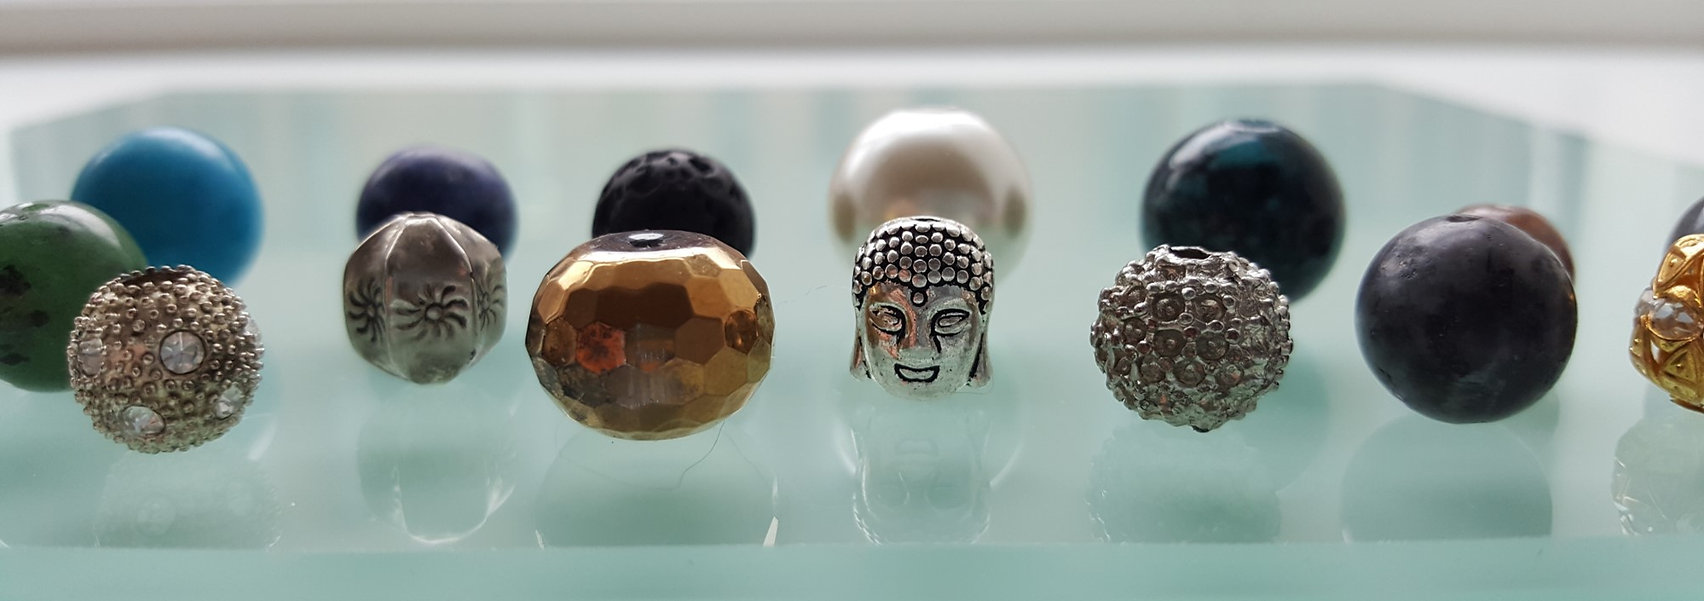 Beads and Gemstones from CPH'ATTITUDE Jewelry